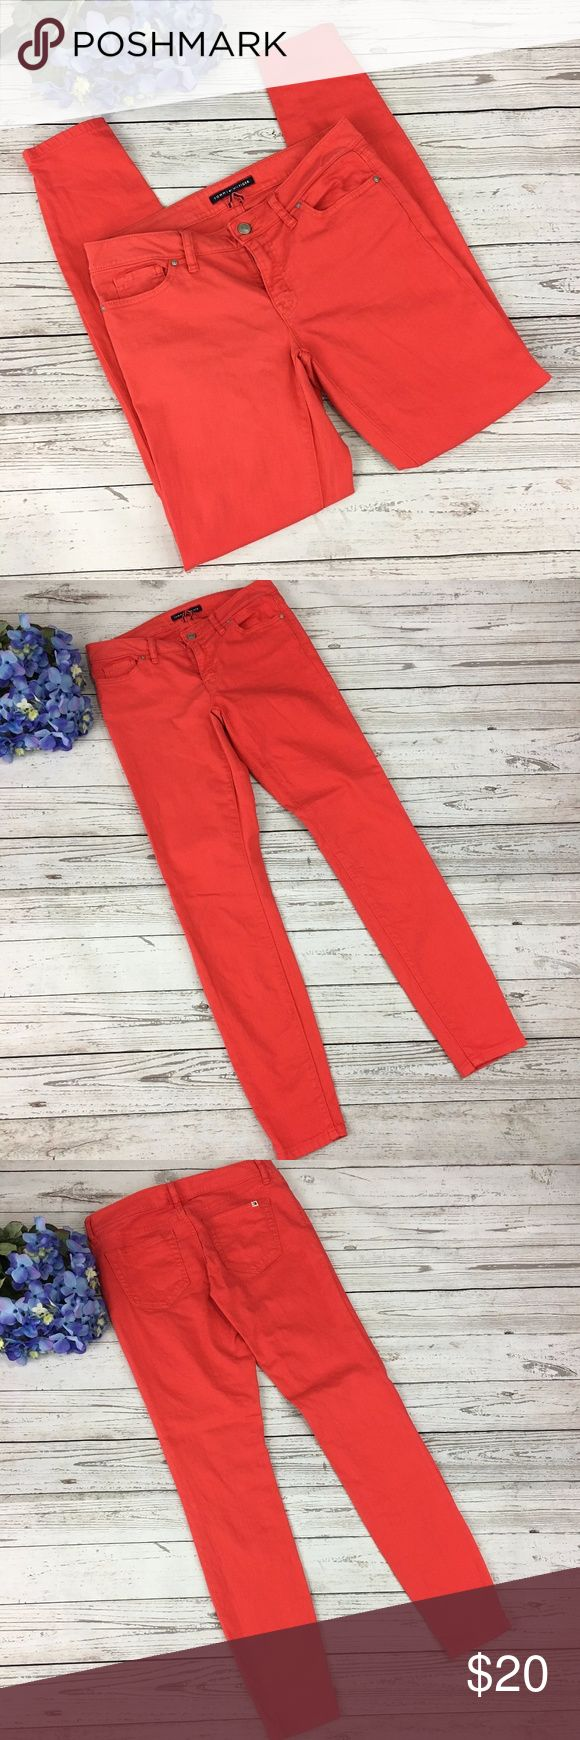 "Tommy Hilfiger Burnt Orange Skinny Jeans Tommy Hilfiger burnt orange skinny jeans. Size 2. Good pre-owned condition – no holes or stains. No trades.  98% Cotton, 2% Elastane Machine wash  Measurements laying flat (approximate): Waist: 15"" Inseam: 30.5"" Rise front: 7.5"" Tommy Hilfiger Jeans Skinny"